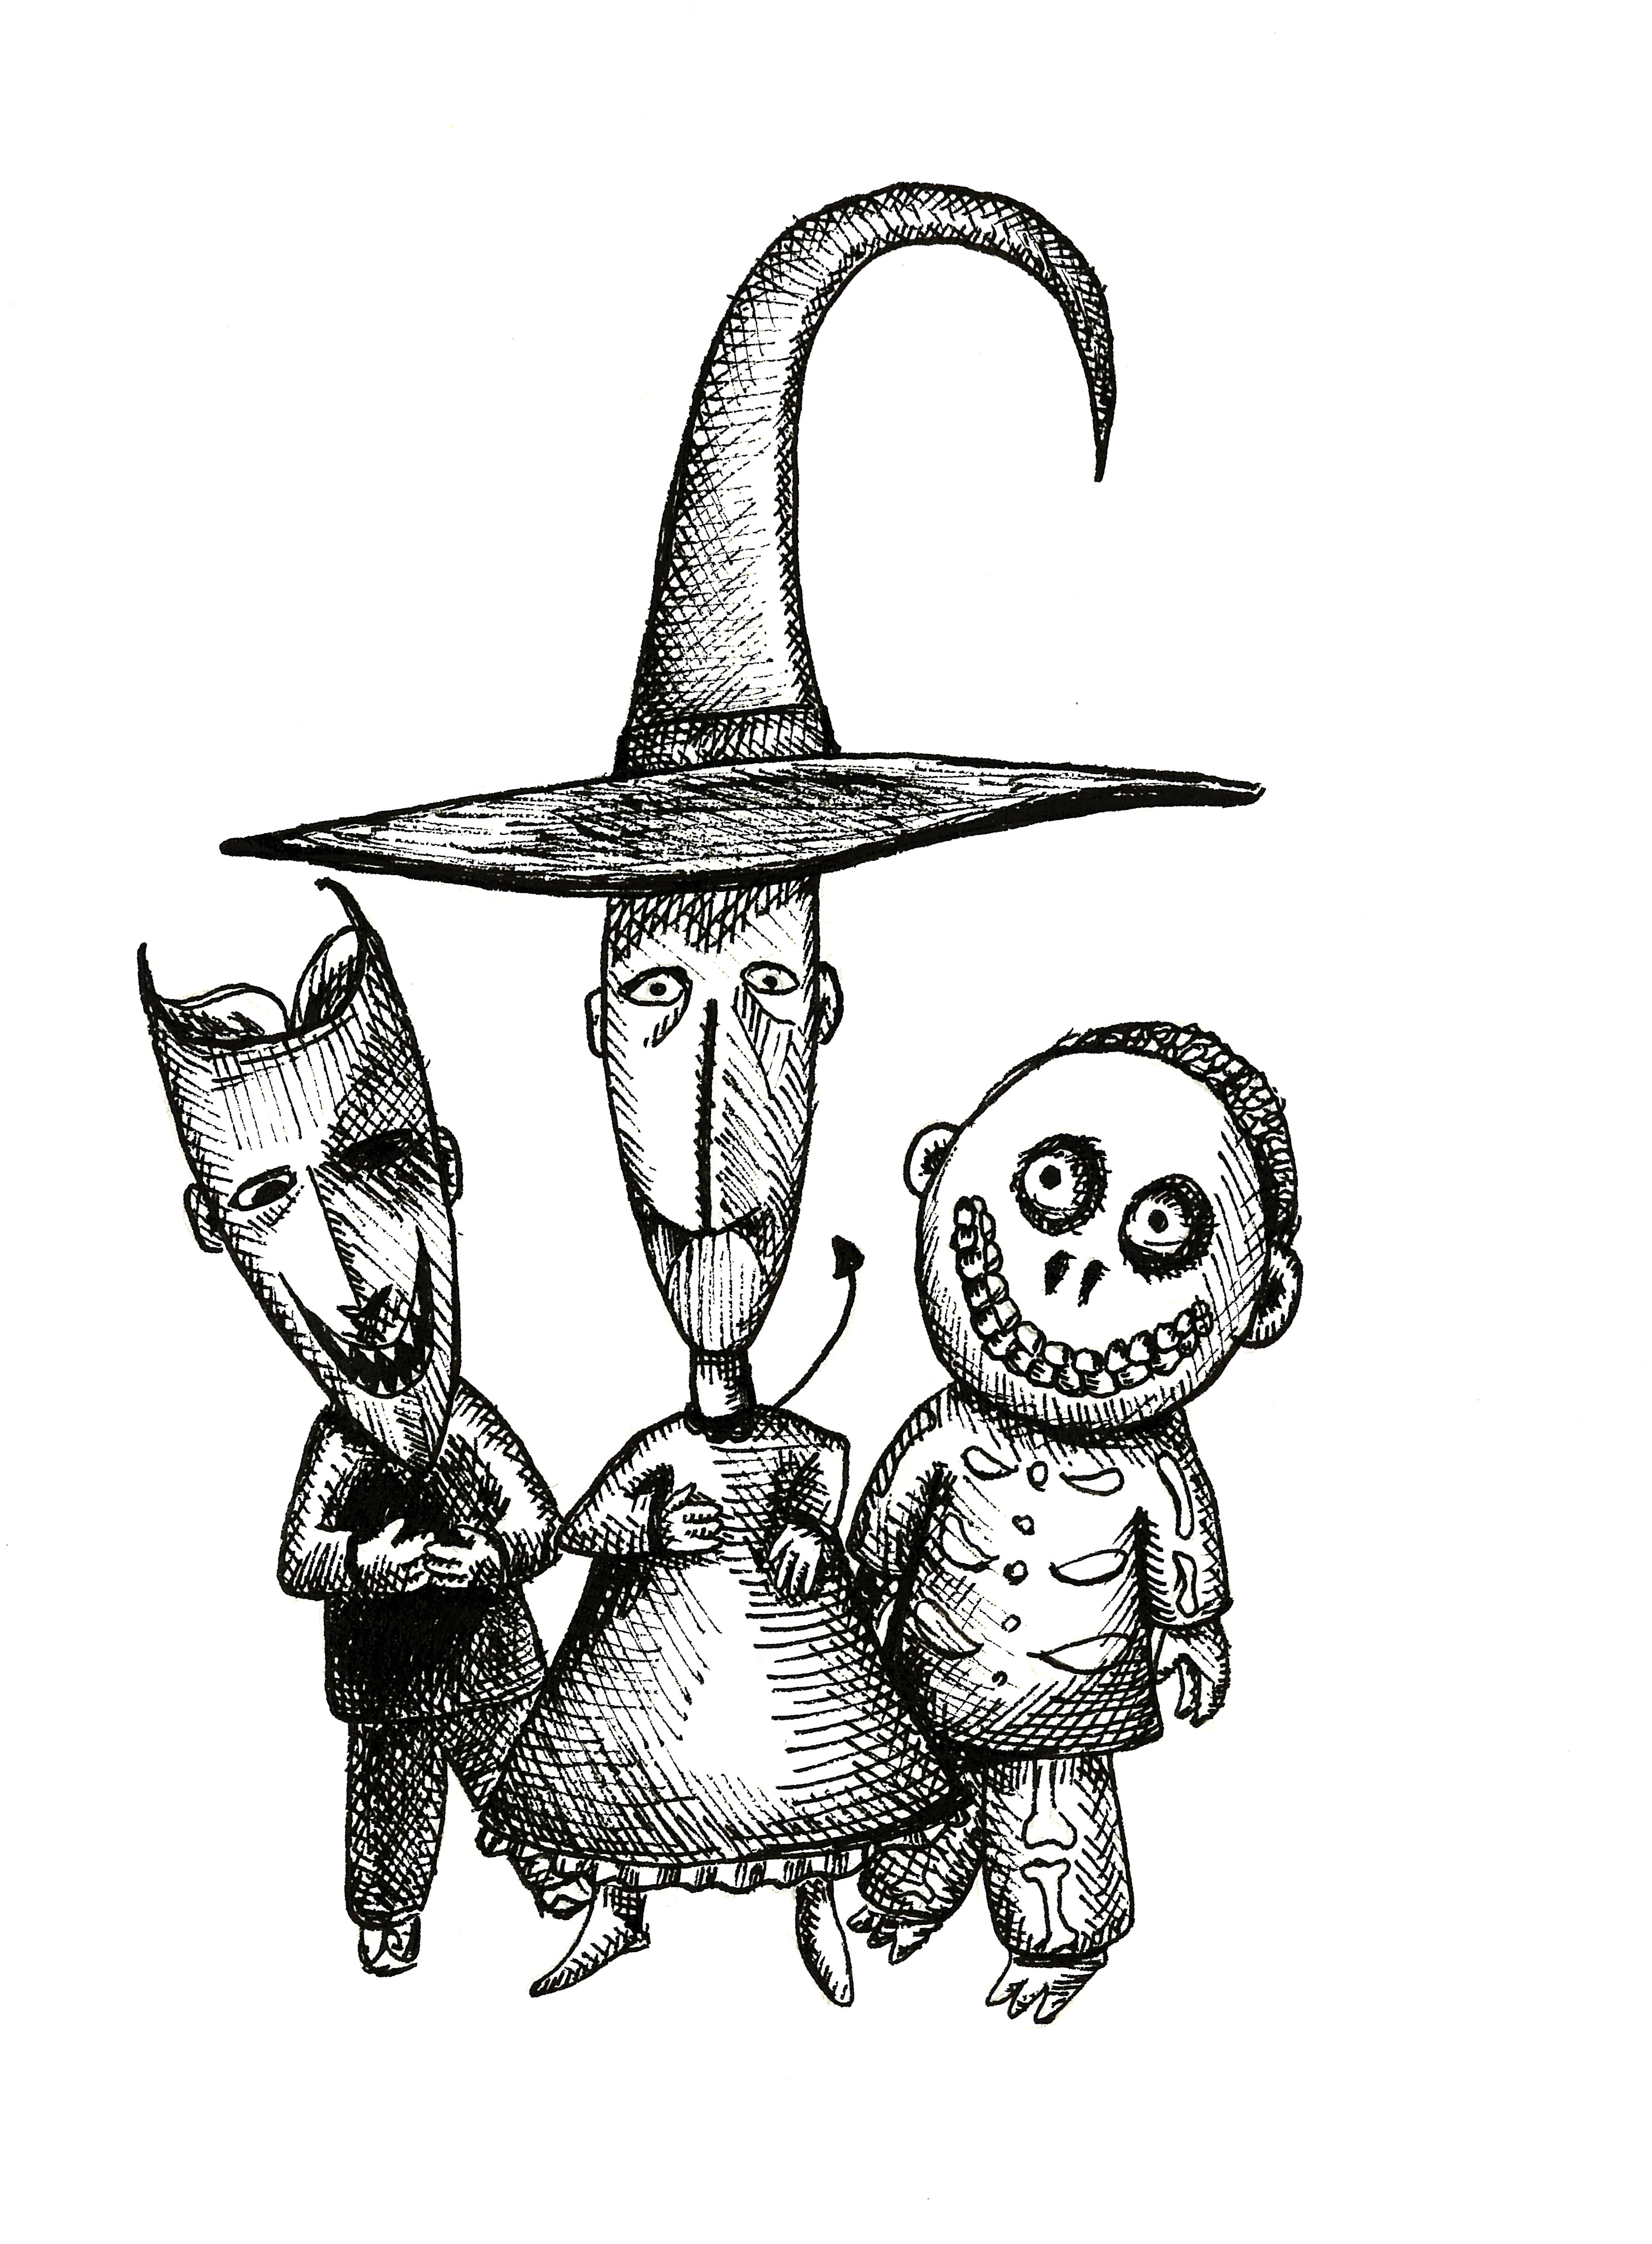 2977x4043 The Nightmare Before Christmas Drawings Nightmare Before Christmas